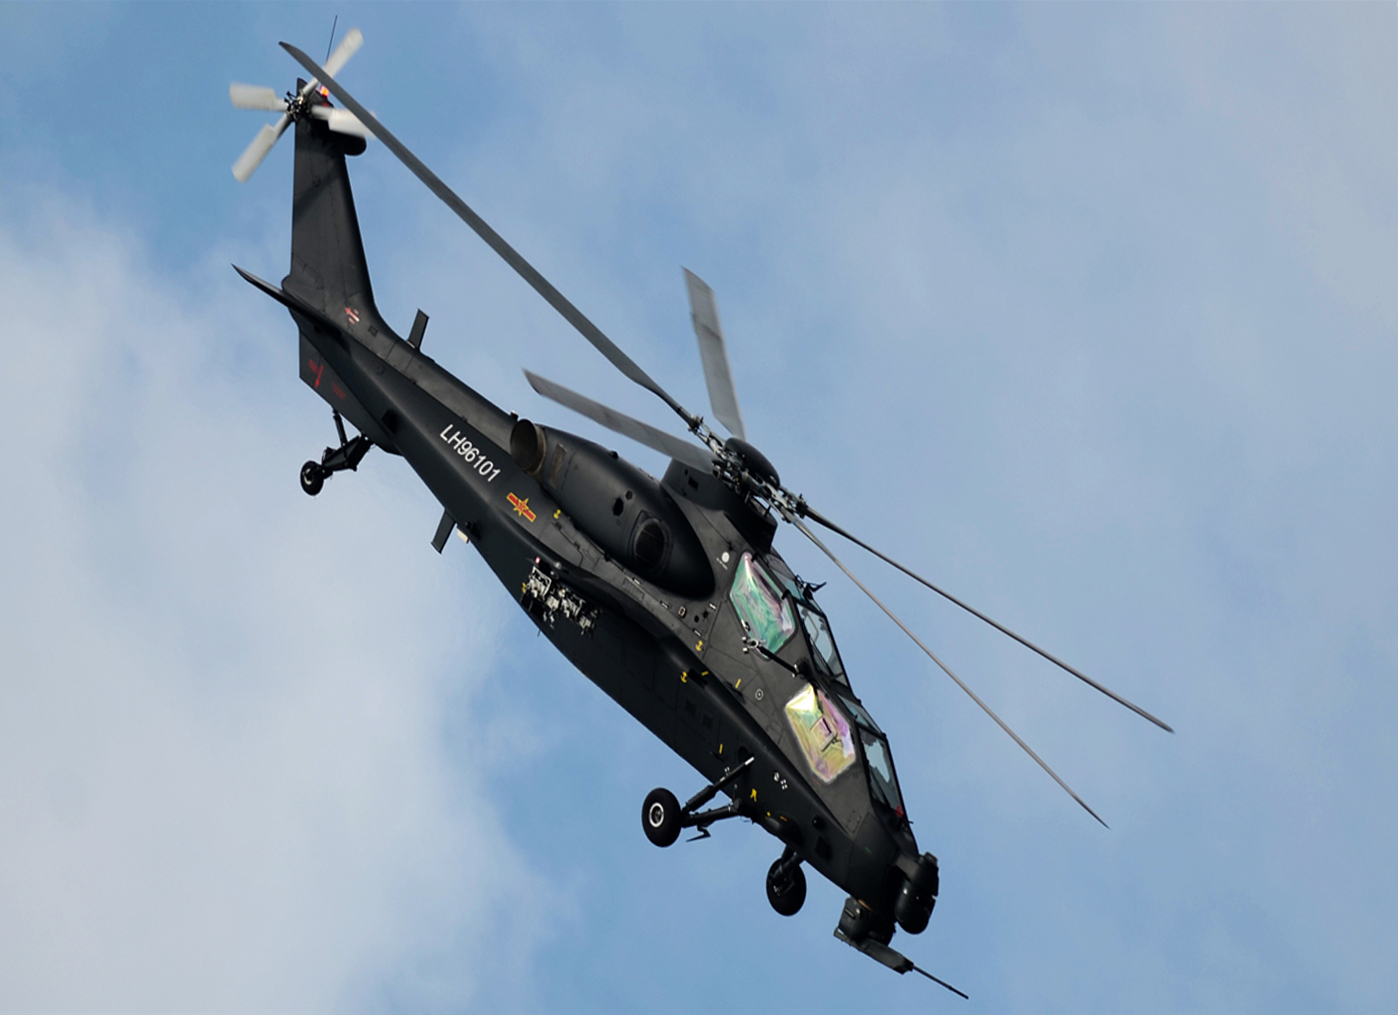 HQ Image of Chinese Z-10 Attack Helicopter | Chinese ...